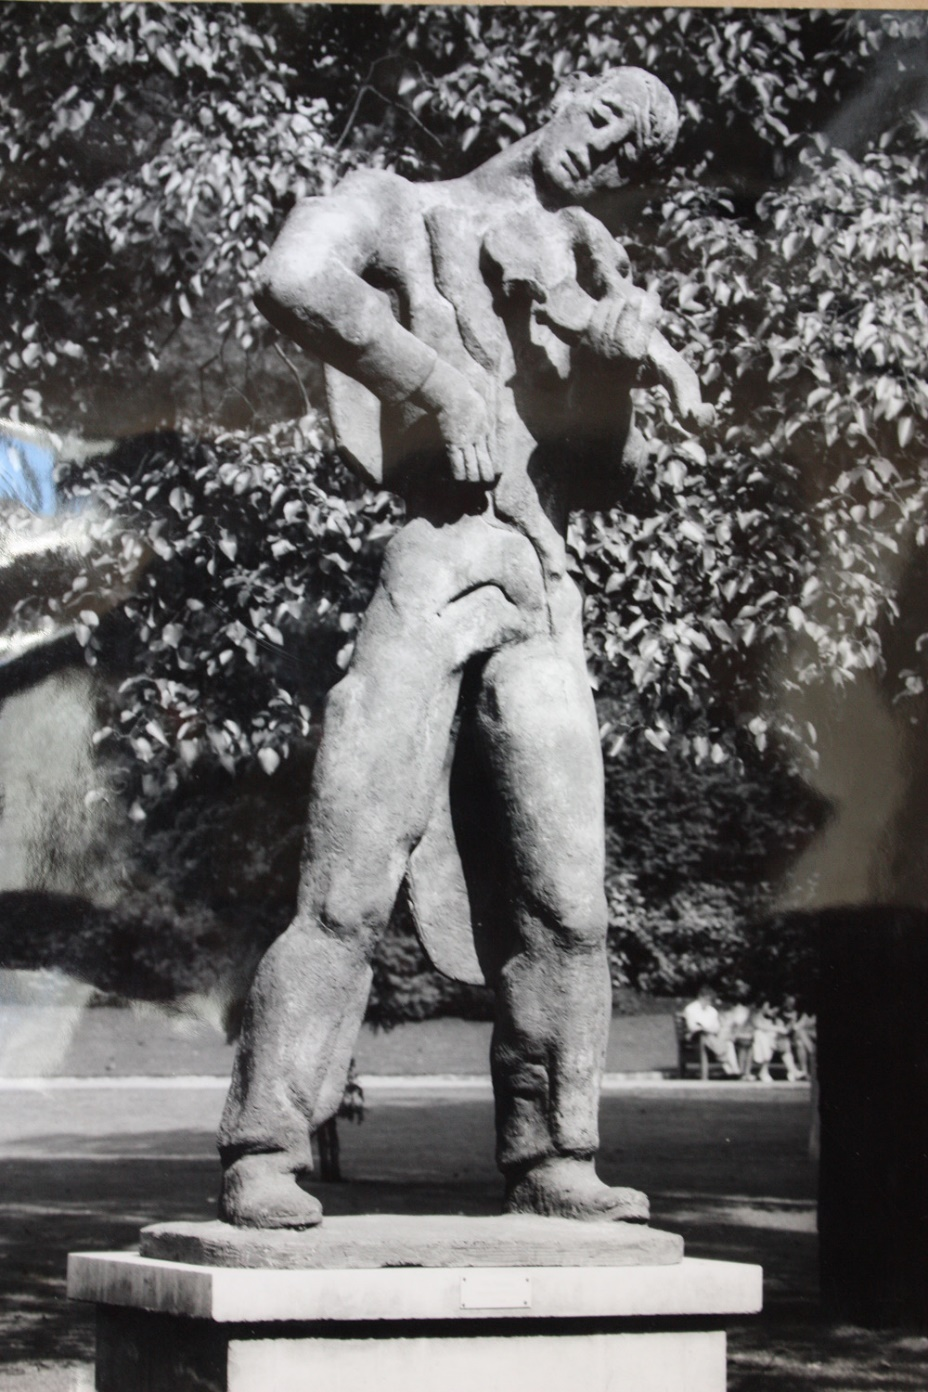 Siegfried Charoux, Violinist (cement), 1959-60, shown at LCC open air sculpture exhibition in Battersea Park 1960.